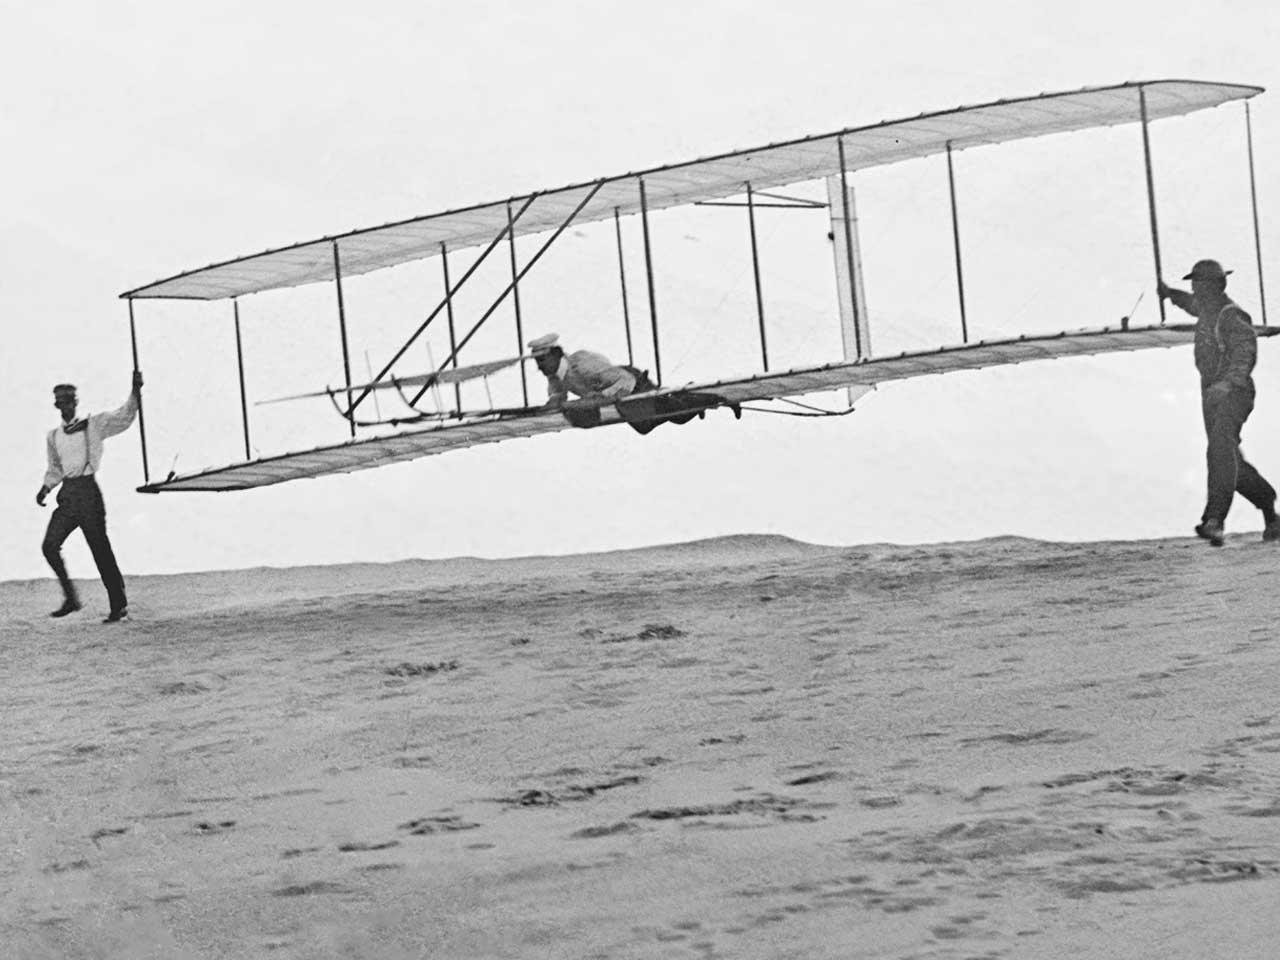 Orville Wright was still alive when atomic bombs were dropped on Japan in 1945. He died in 1948.